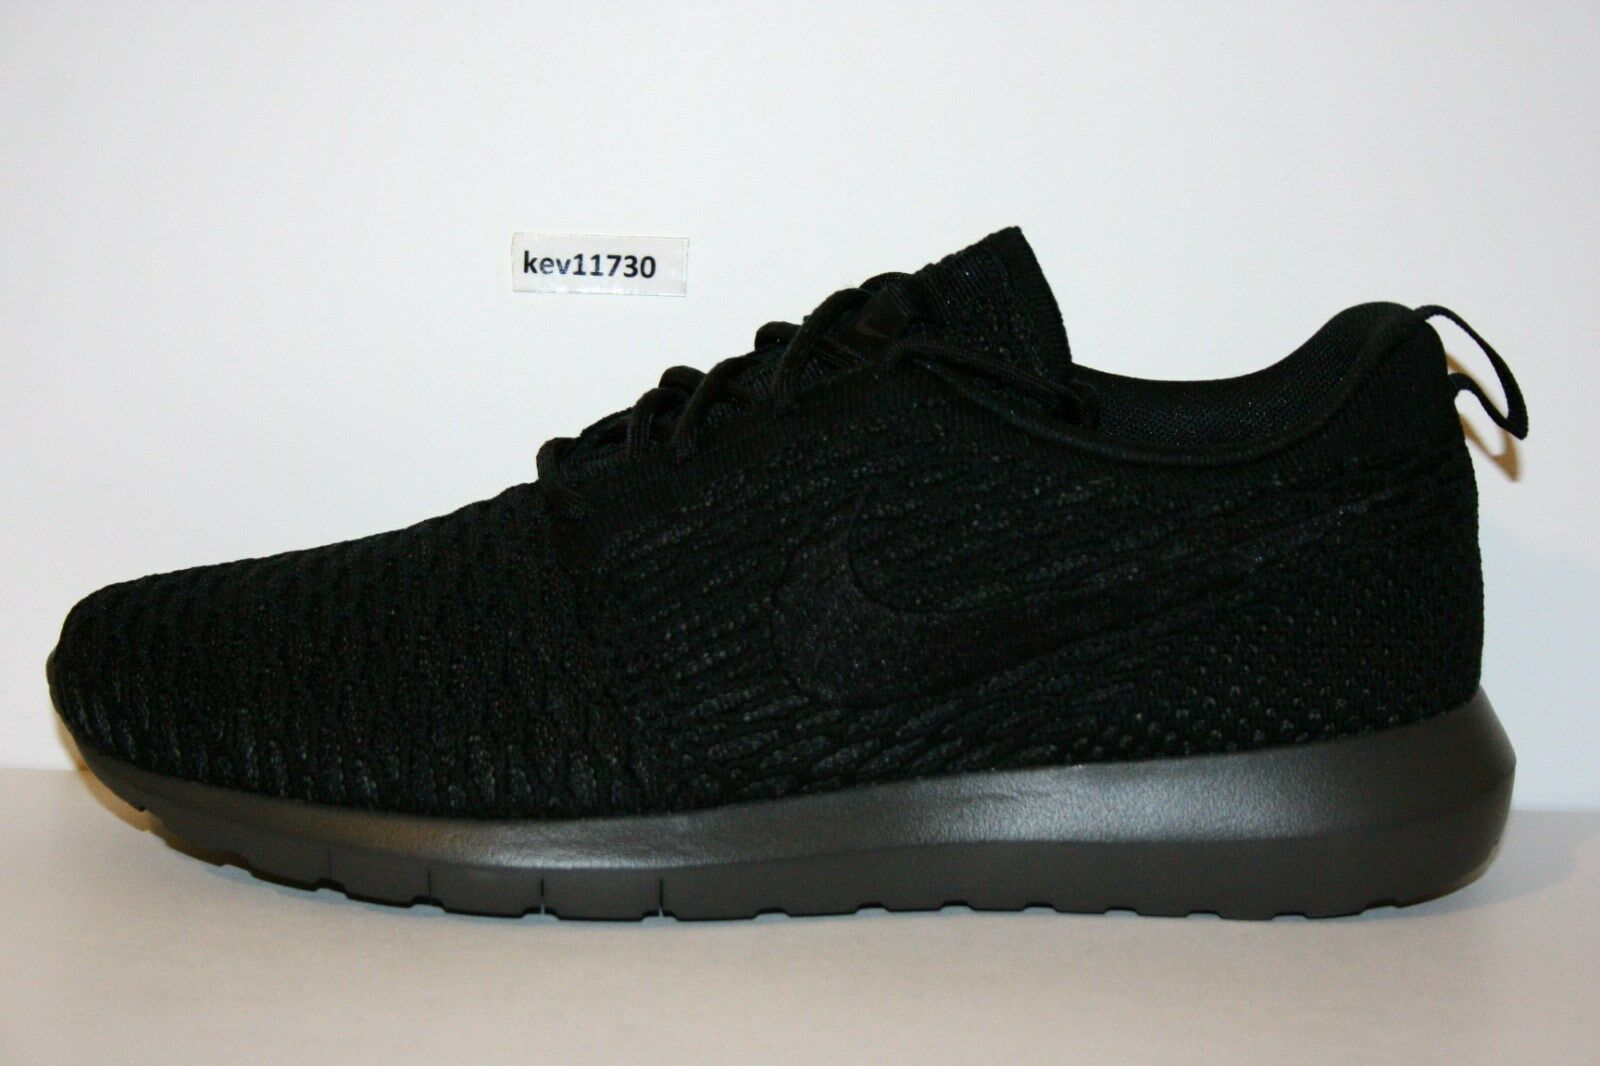 AUTHENTIC NIKE Roshe Run NM Flyknit SE Black Midnight Fog  677243 001 Men size